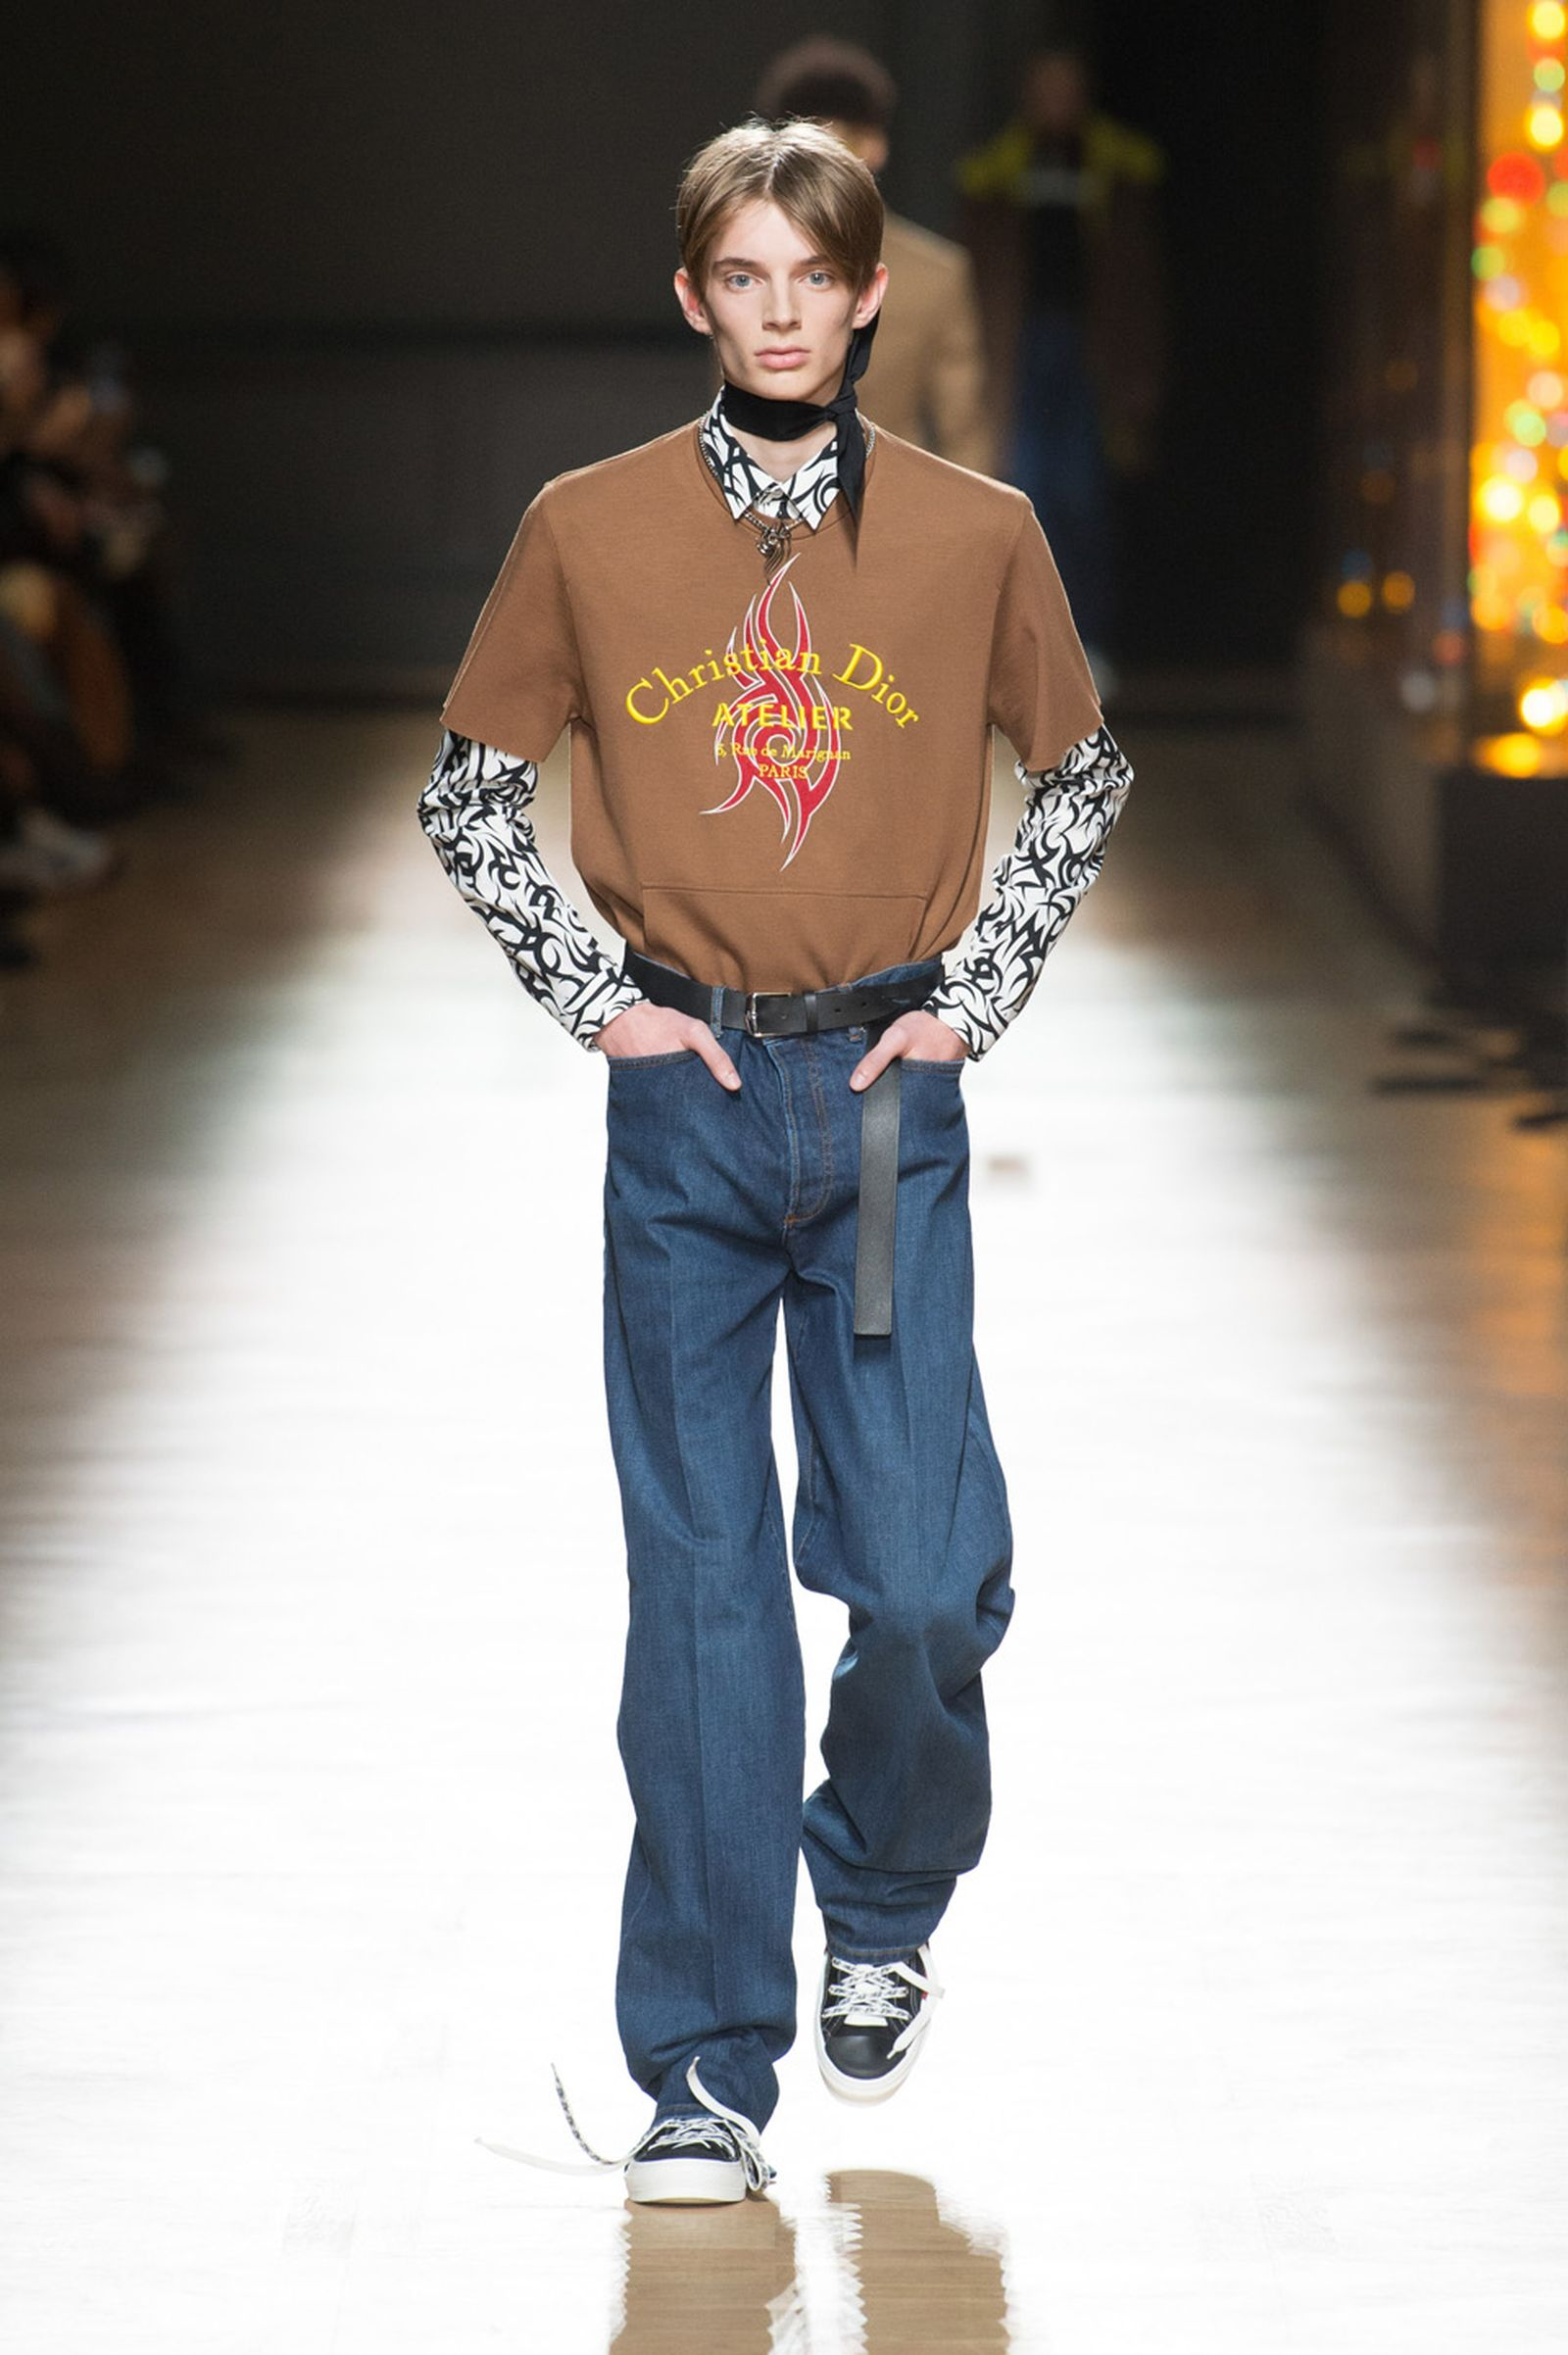 DIOR HOMME WINTER 18 19 BY PATRICE STABLE look31 Fall/WInter 2018 runway